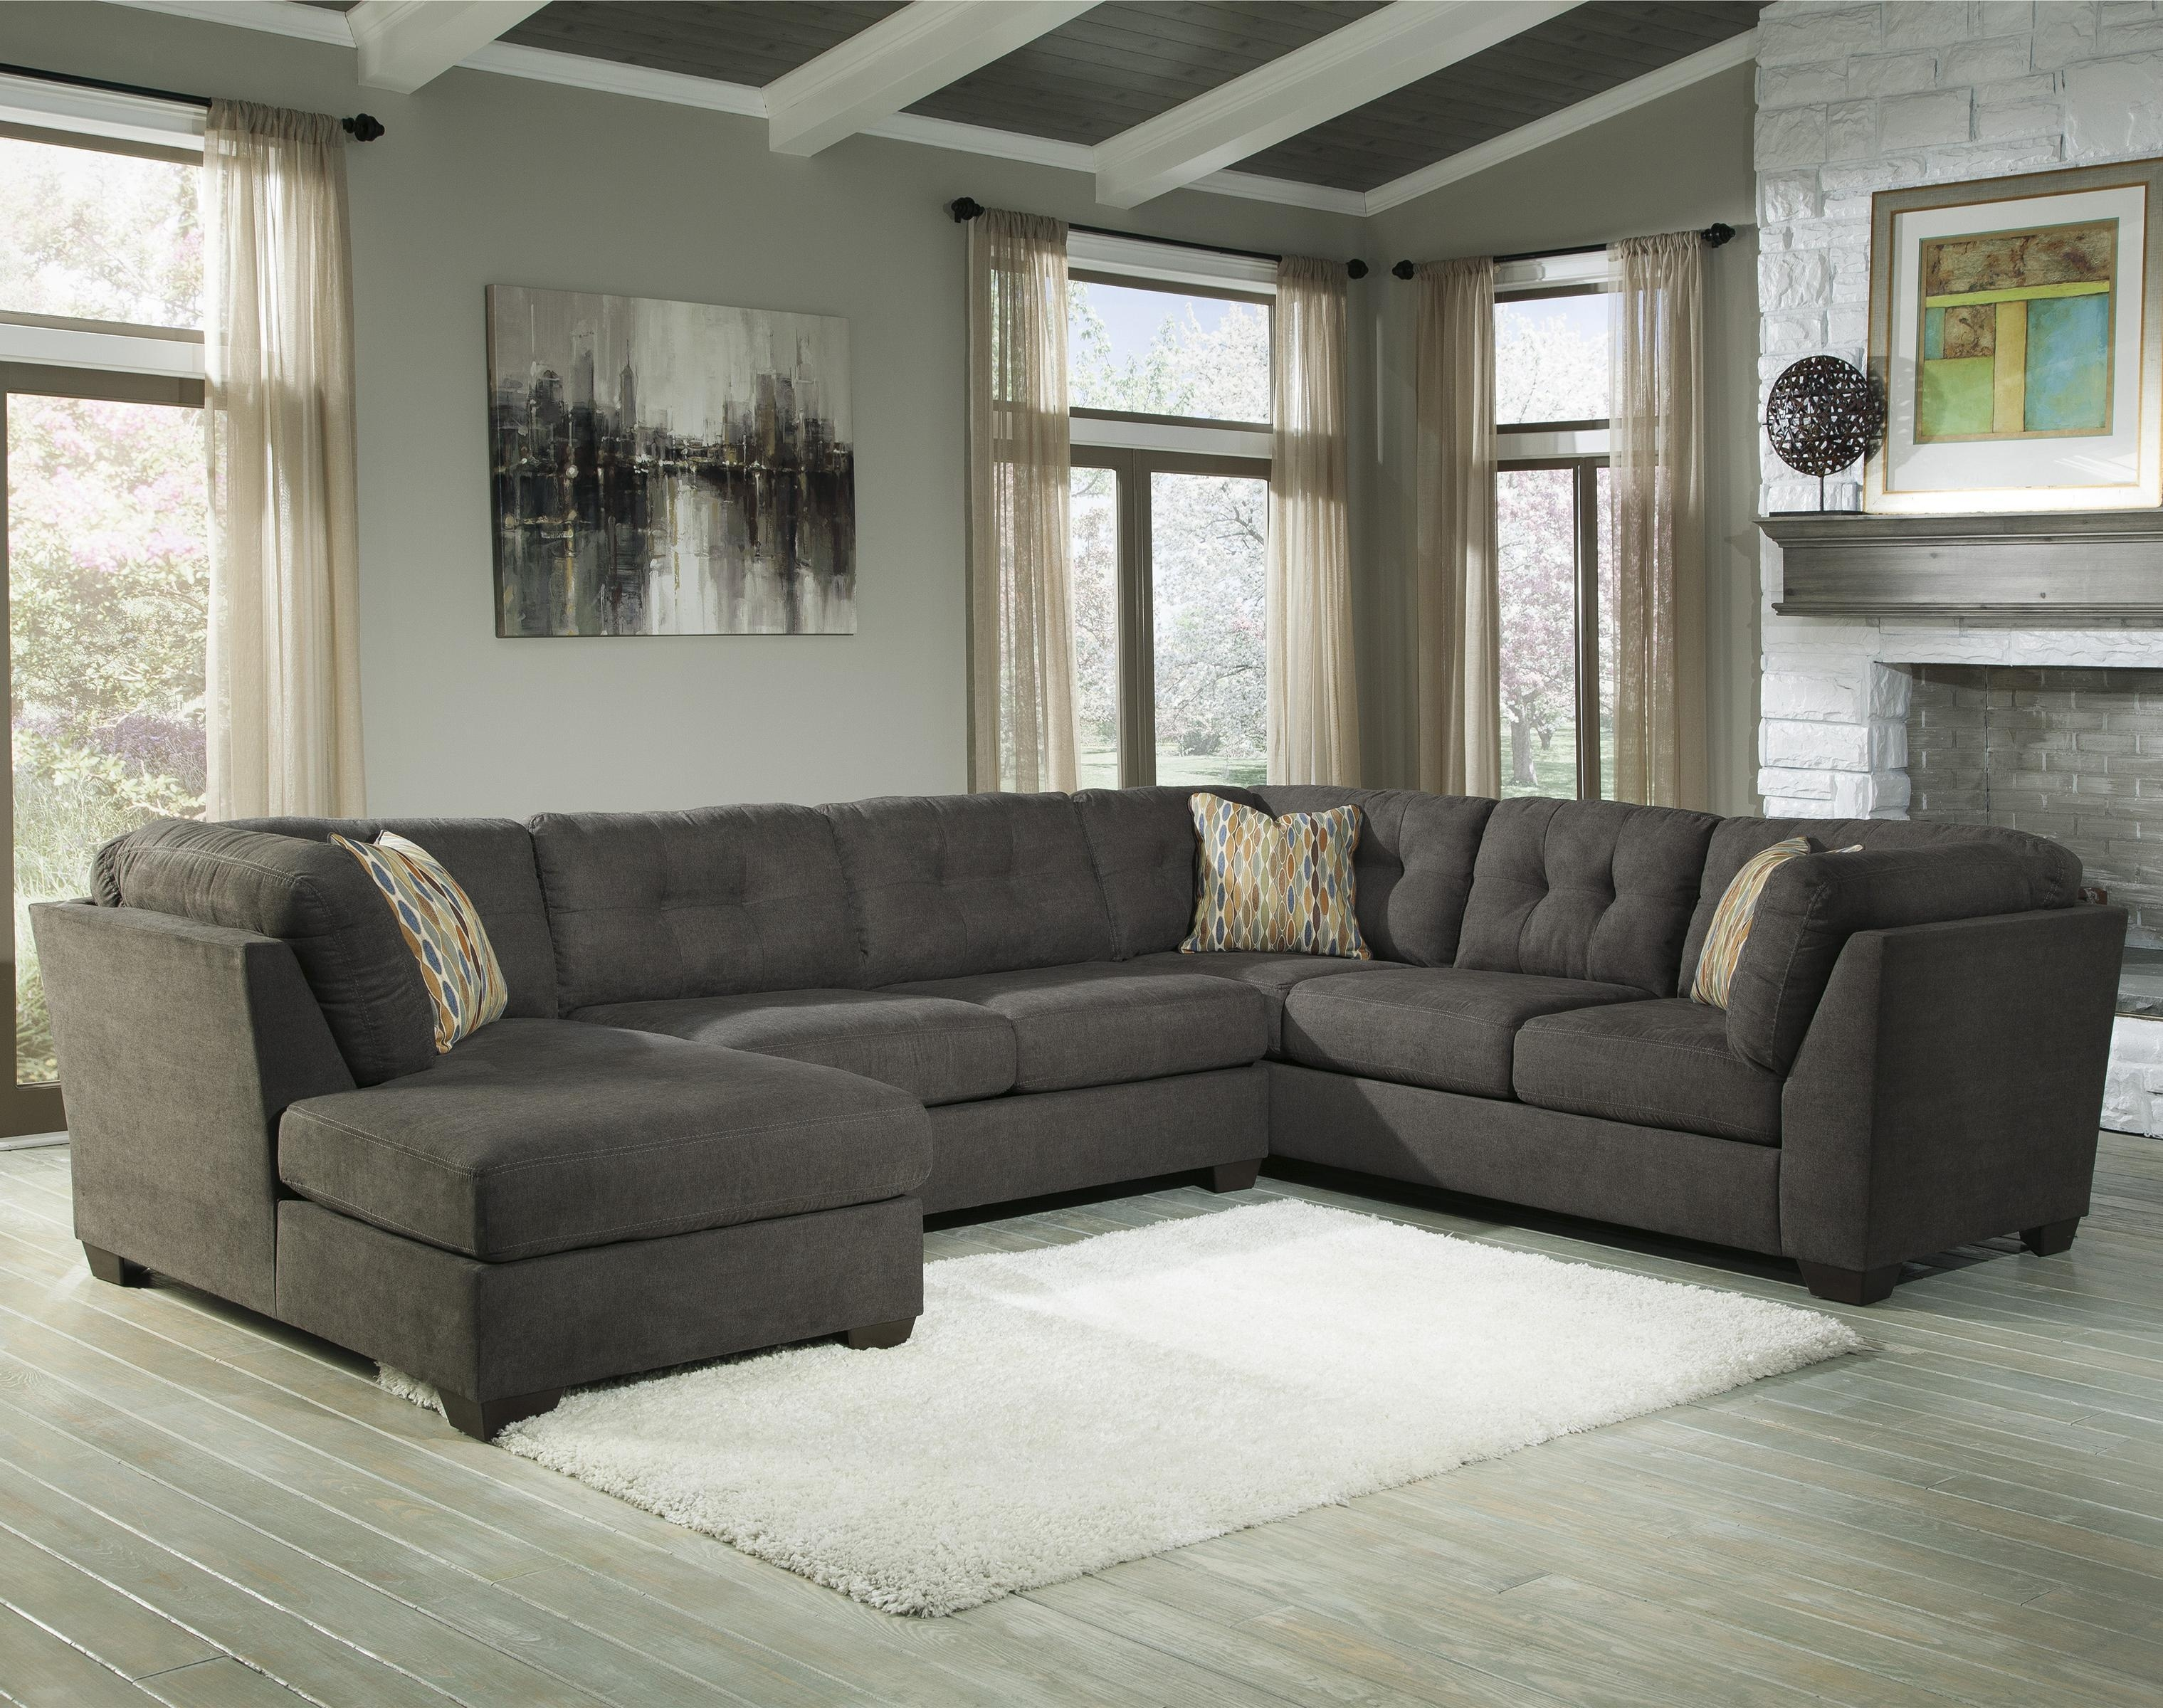 Benchcraft Delta City – Steel 3 Piece Modular Sectional W/ Armless Throughout Ashley Sectional Sleeper (Image 1 of 15)